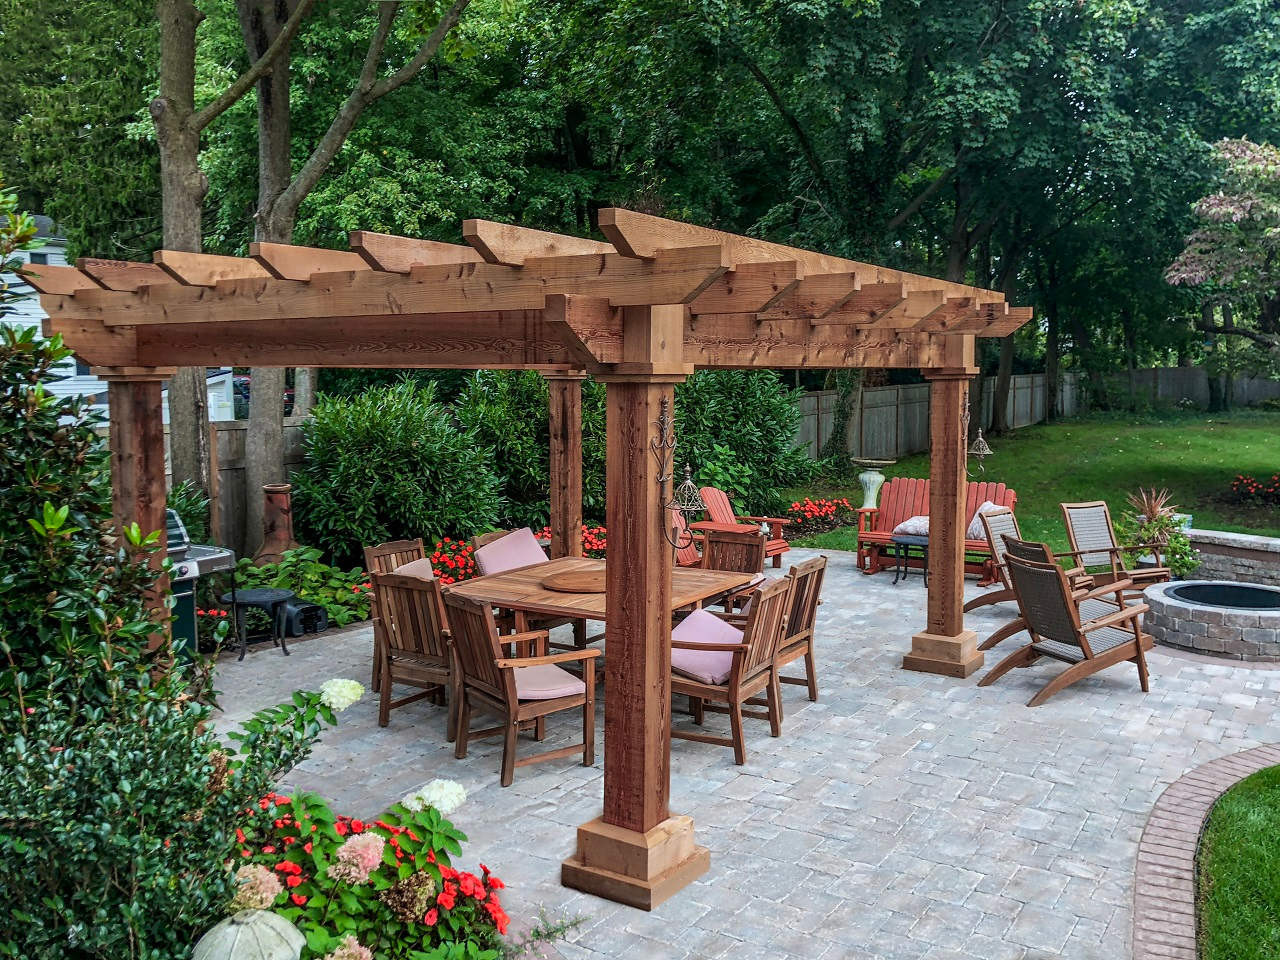 This customer expanded their backyard dramatically by creating a living space in the corner of their yard complete with a rough sawn cedar pergola, wood dining set, fire pit and Adirondack chairs all set on stone pavers.